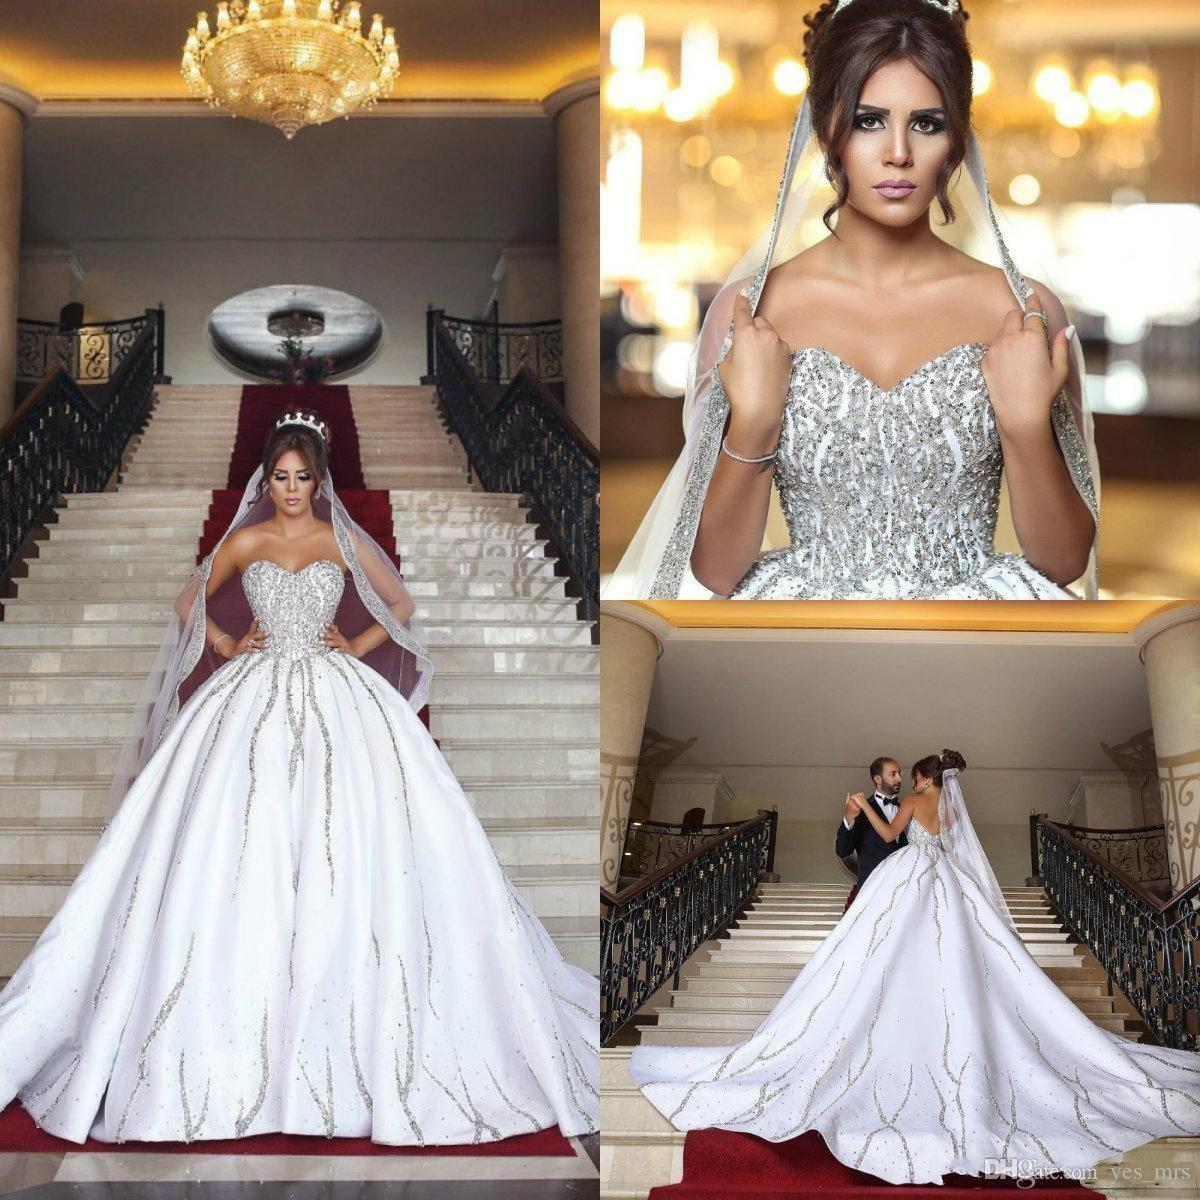 baeed77fcea 2018 Luxury Ball Gown Wedding Dresses Arabic Sweetheart Dubai V Back Beads  Crystal Sequins Sweep Train Country Plus Size Formal Bridal Gowns Strapless  Ball ...